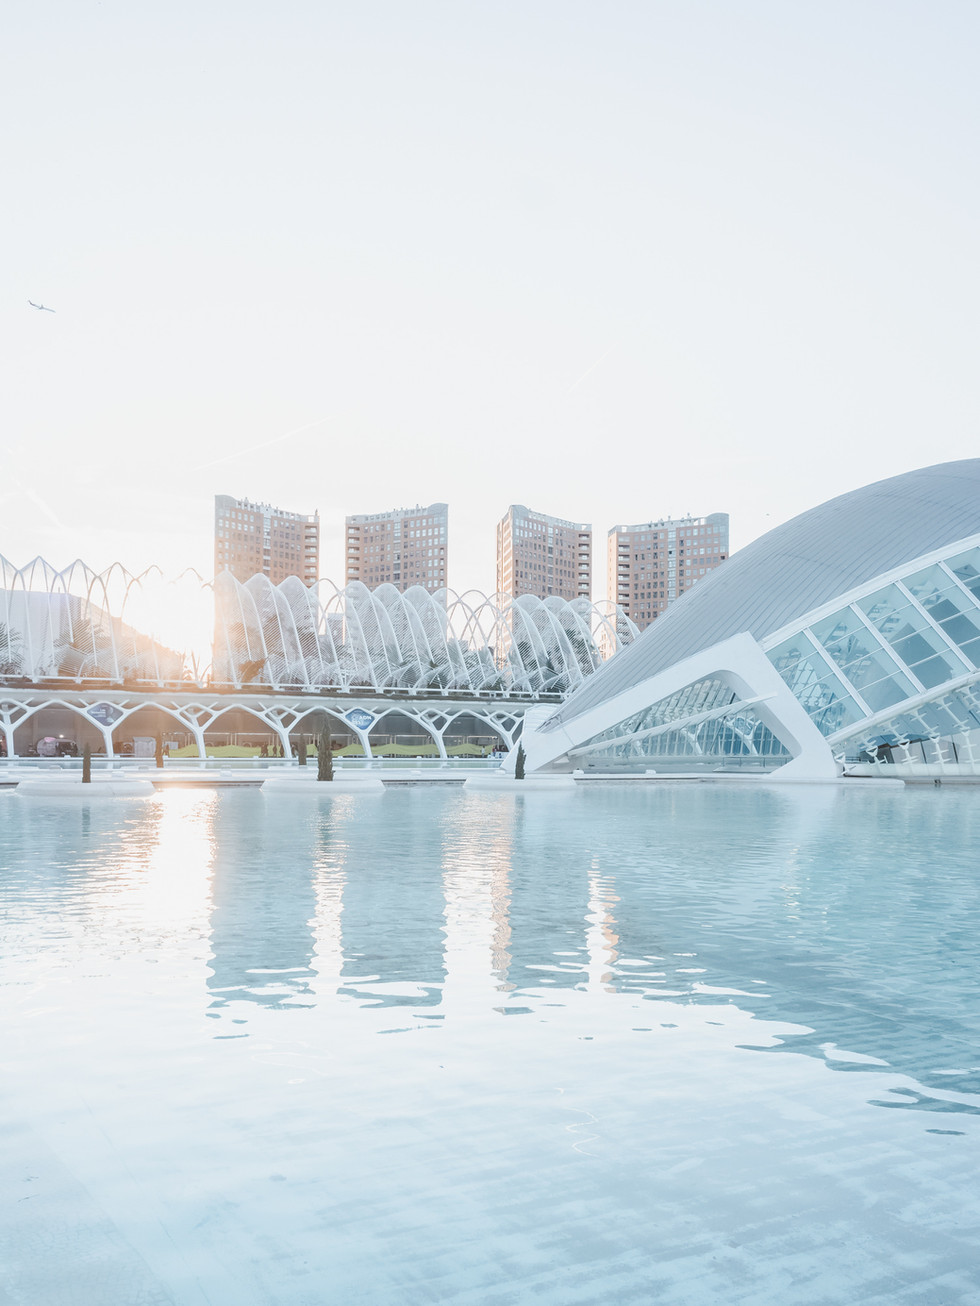 City of Arts and Sciences - Santiago Calatrava